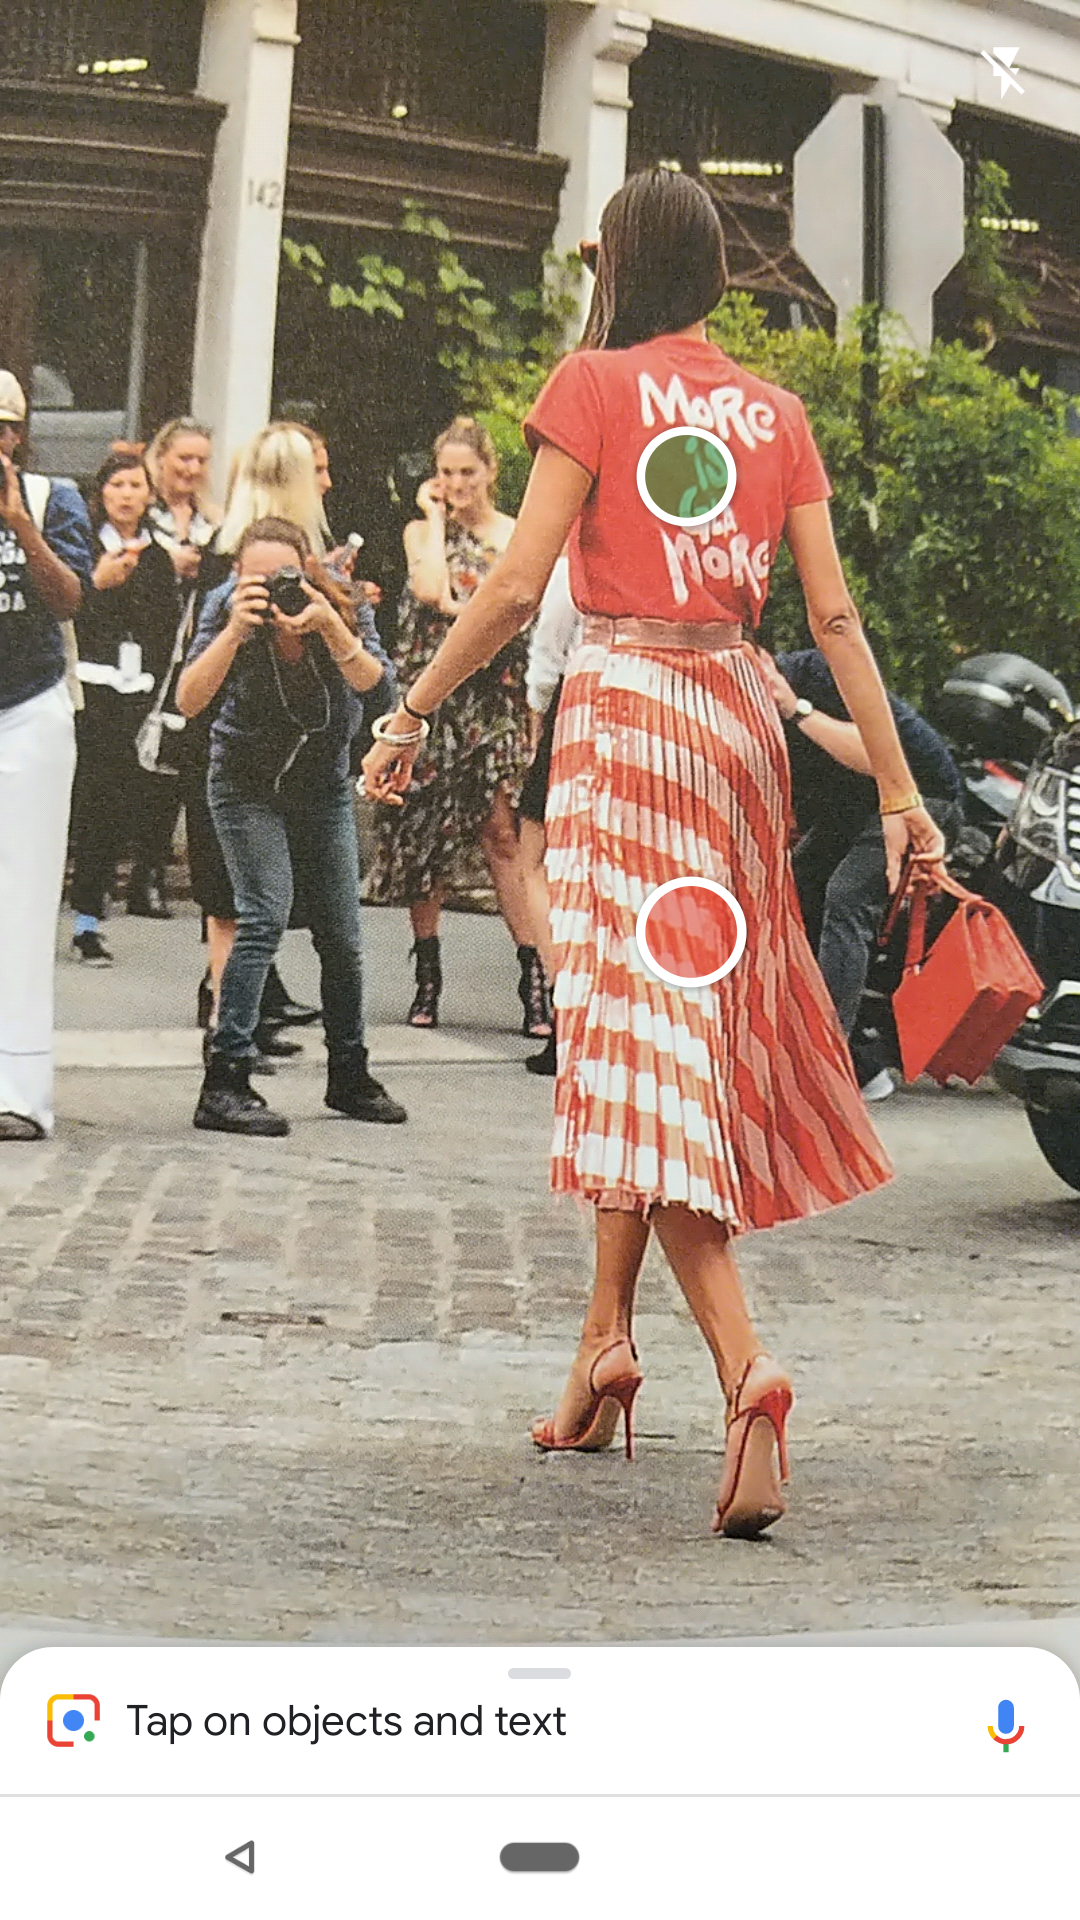 A woman walks down the street, with a green dot superimposed on her back.